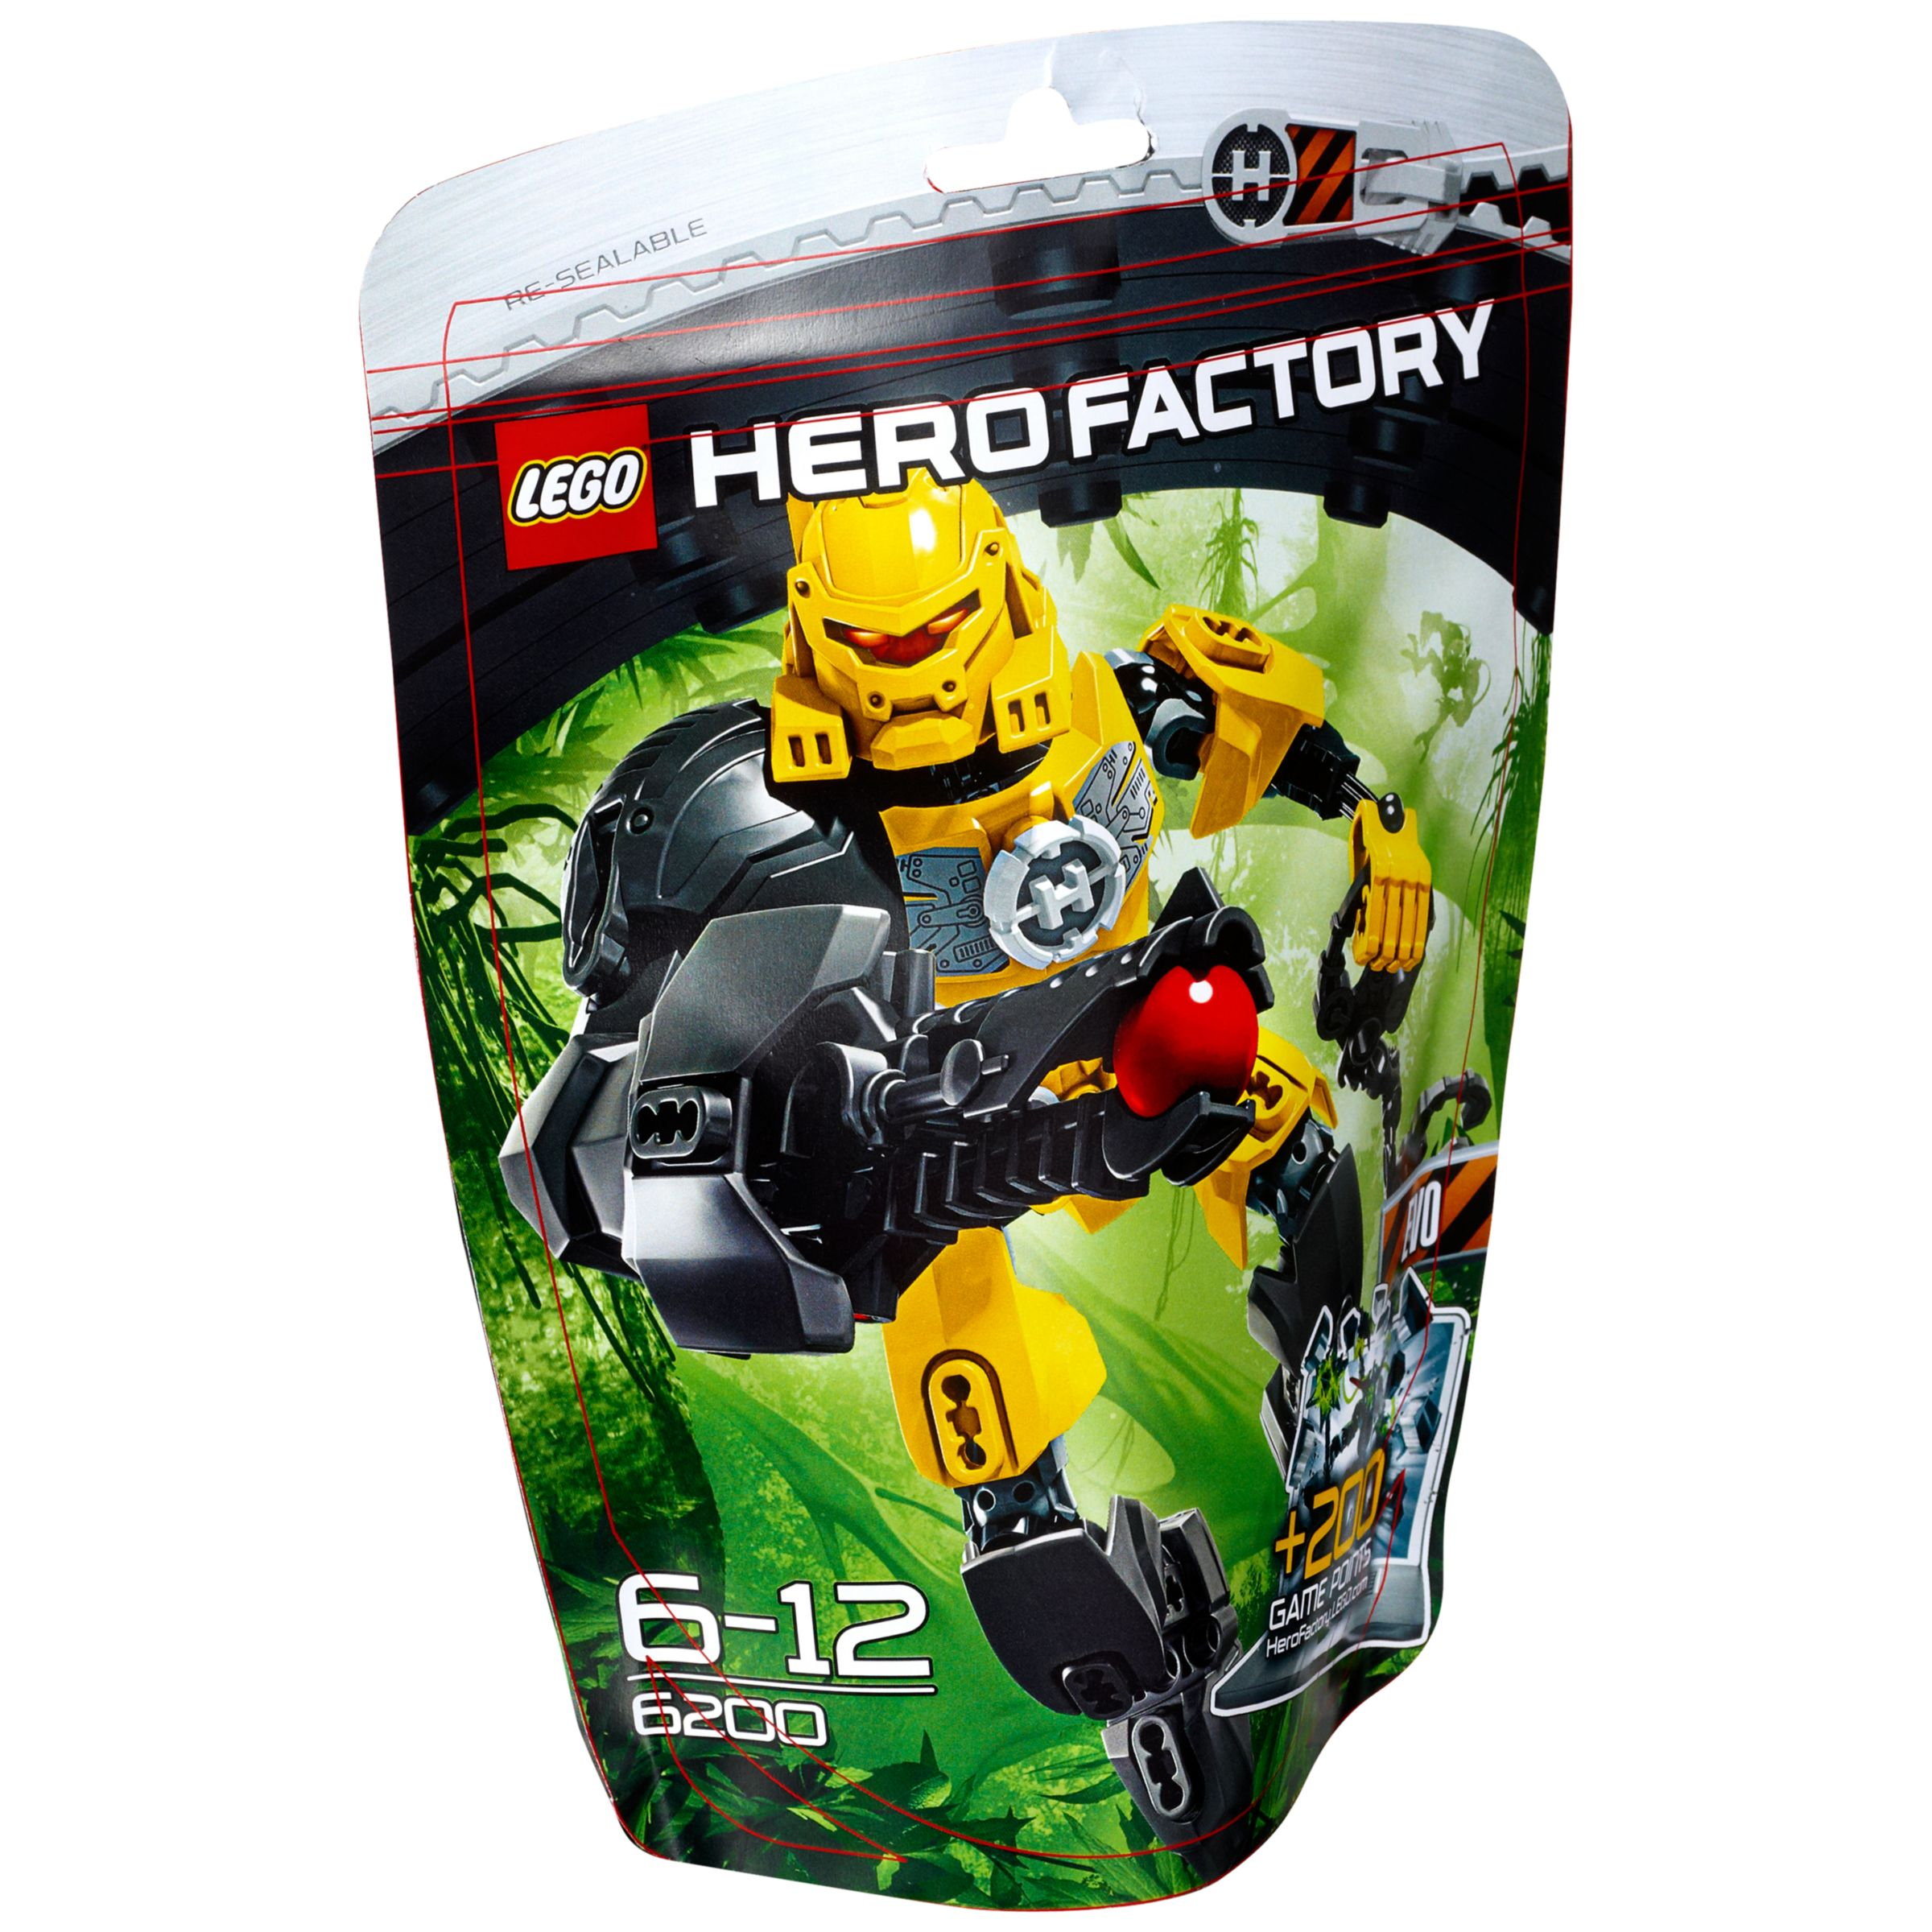 Lego Hero Factory Evo